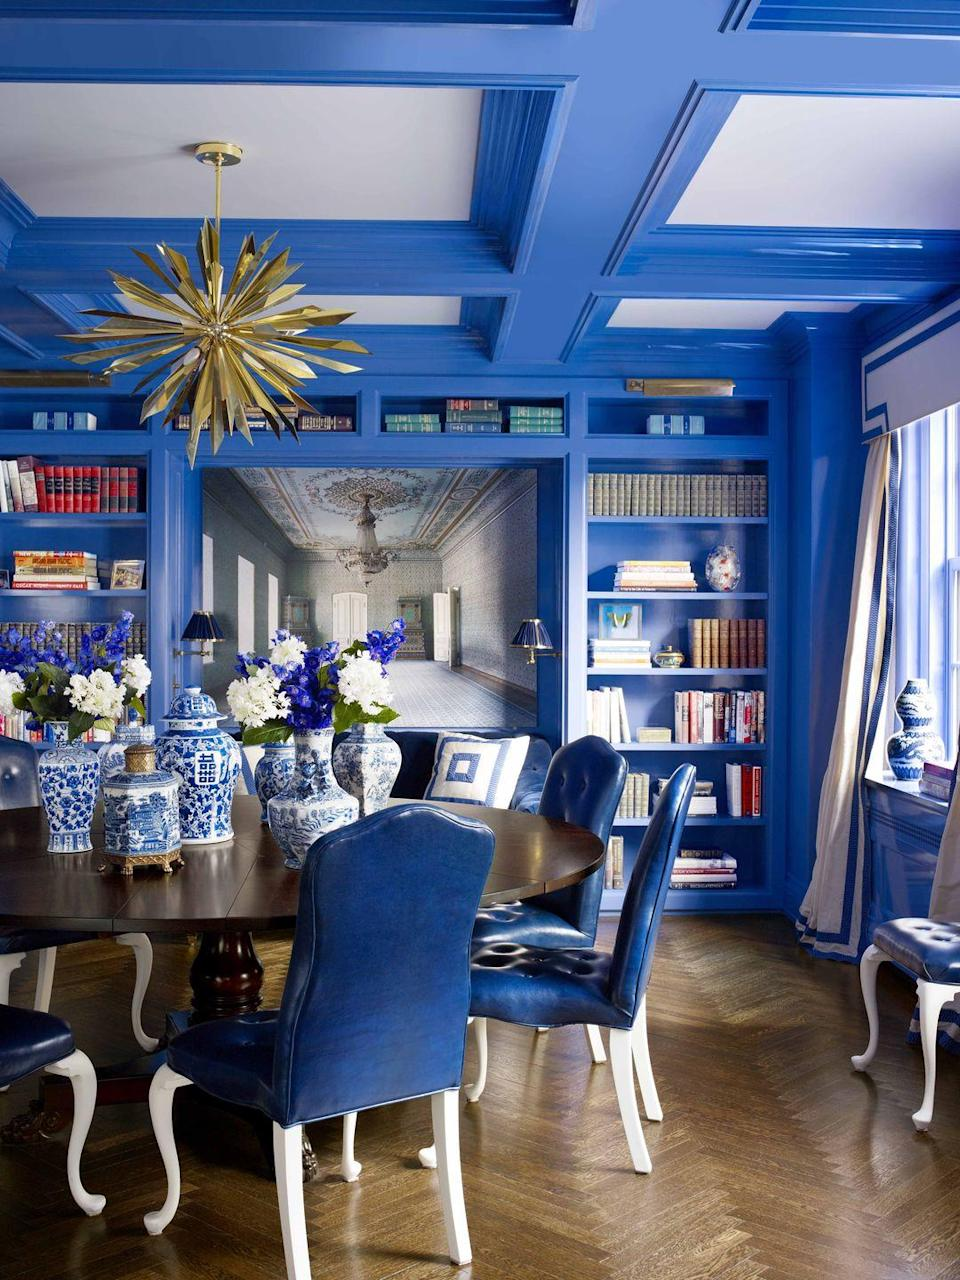 """<p>For a Manhattan dining room, designer <a href=""""http://www.kembleinteriors.com"""" rel=""""nofollow noopener"""" target=""""_blank"""" data-ylk=""""slk:Celerie Kemble"""" class=""""link rapid-noclick-resp"""">Celerie Kemble</a> carried the vibrant blue on the walls, a custom color by <a href=""""https://www.finepaintsofeurope.com"""" rel=""""nofollow noopener"""" target=""""_blank"""" data-ylk=""""slk:Fine Paints of Europe"""" class=""""link rapid-noclick-resp"""">Fine Paints of Europe</a>, up to the ceiling's coffering, which makes a graphic statement. The dining table is from <a href=""""https://centuryfurniture.com"""" rel=""""nofollow noopener"""" target=""""_blank"""" data-ylk=""""slk:Century"""" class=""""link rapid-noclick-resp"""">Century</a>, and the light fixture is by Tony Duquette for <a href=""""http://www.remains.com"""" rel=""""nofollow noopener"""" target=""""_blank"""" data-ylk=""""slk:Remains Lighting"""" class=""""link rapid-noclick-resp"""">Remains Lighting</a>. </p>"""